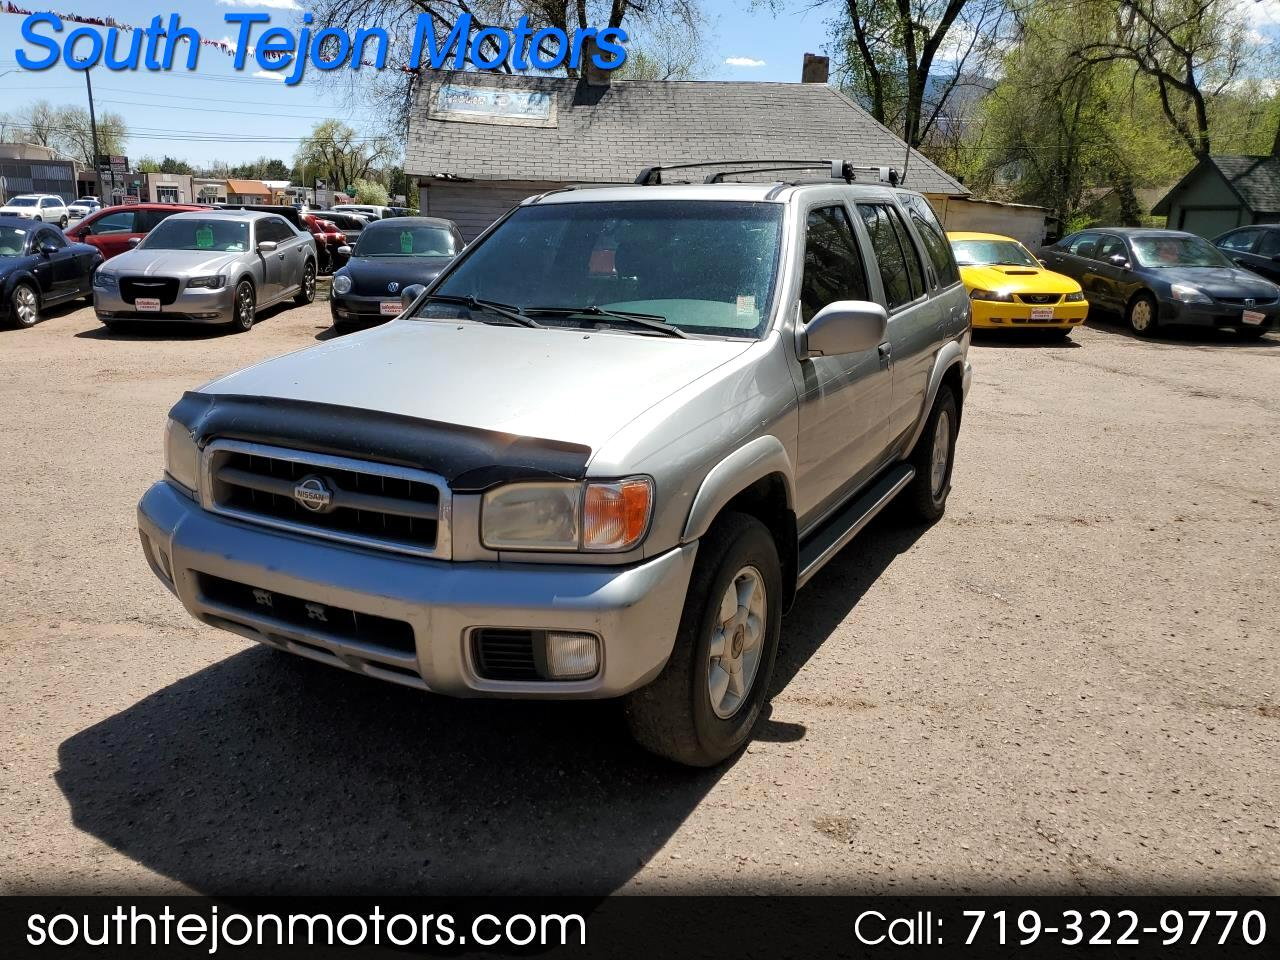 2000 Nissan Pathfinder XE 4WD